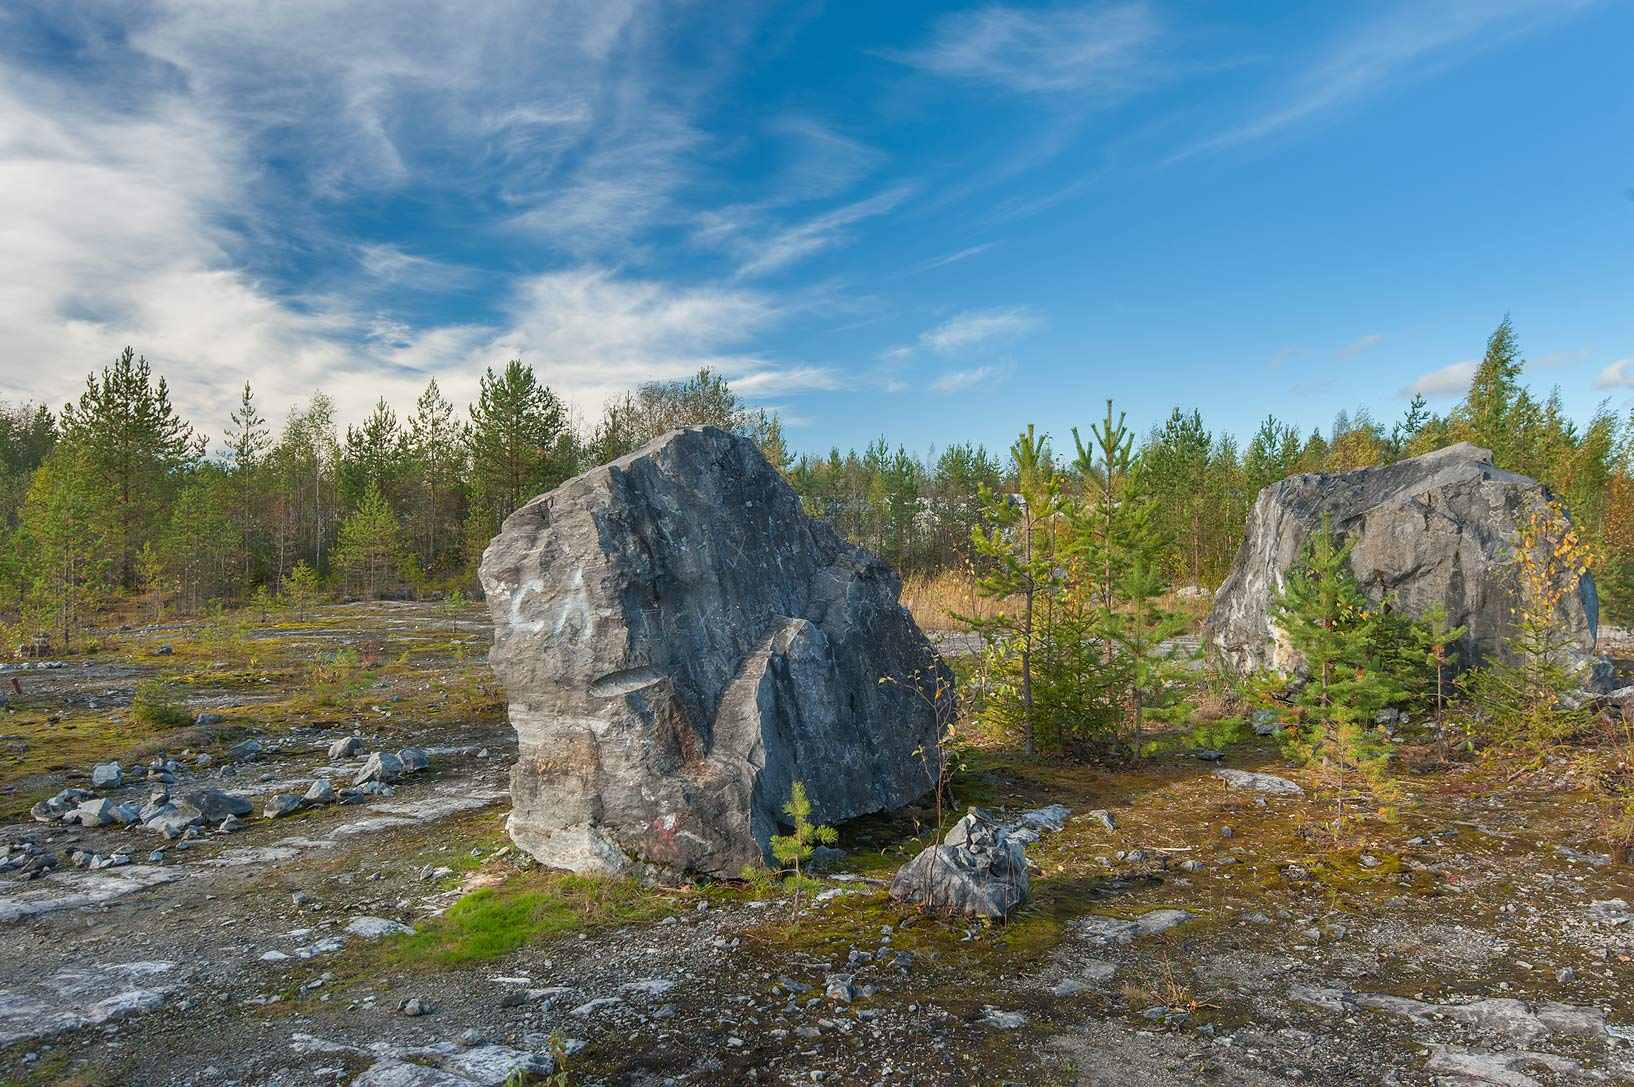 Large rocks near marble quarry in Ruskeala Mountain Park. Karelia, Russia